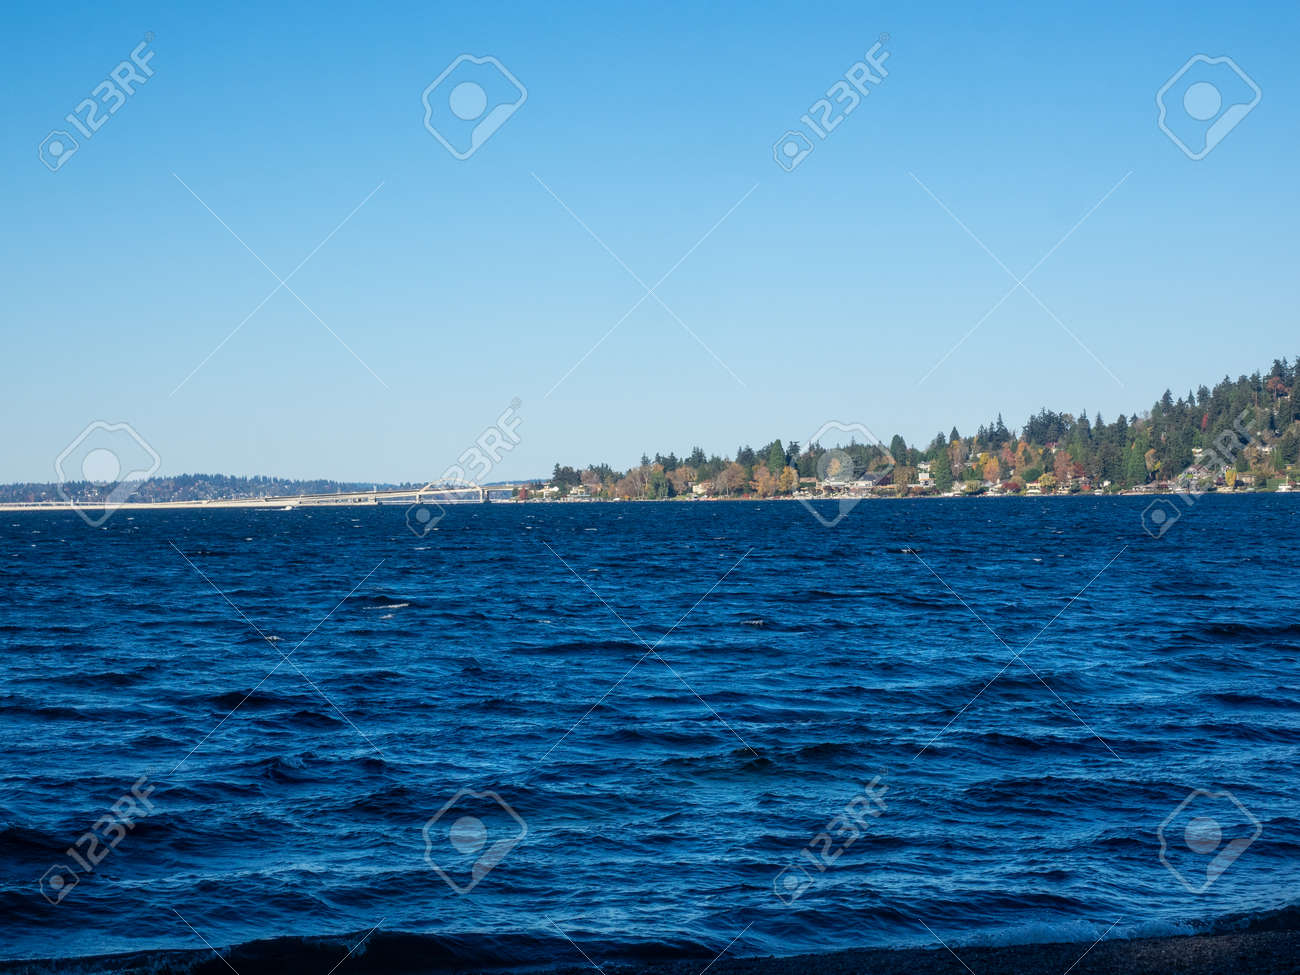 Seward Park is a municipal park in Seattle, Washington, United States. Located in the city neighborhood of the same name, it covers 300 acres (120 ha; 0.47 sq mi). The park occupies all of Bailey Peninsula, a forested peninsula that juts into Lake Washington. - 166628474